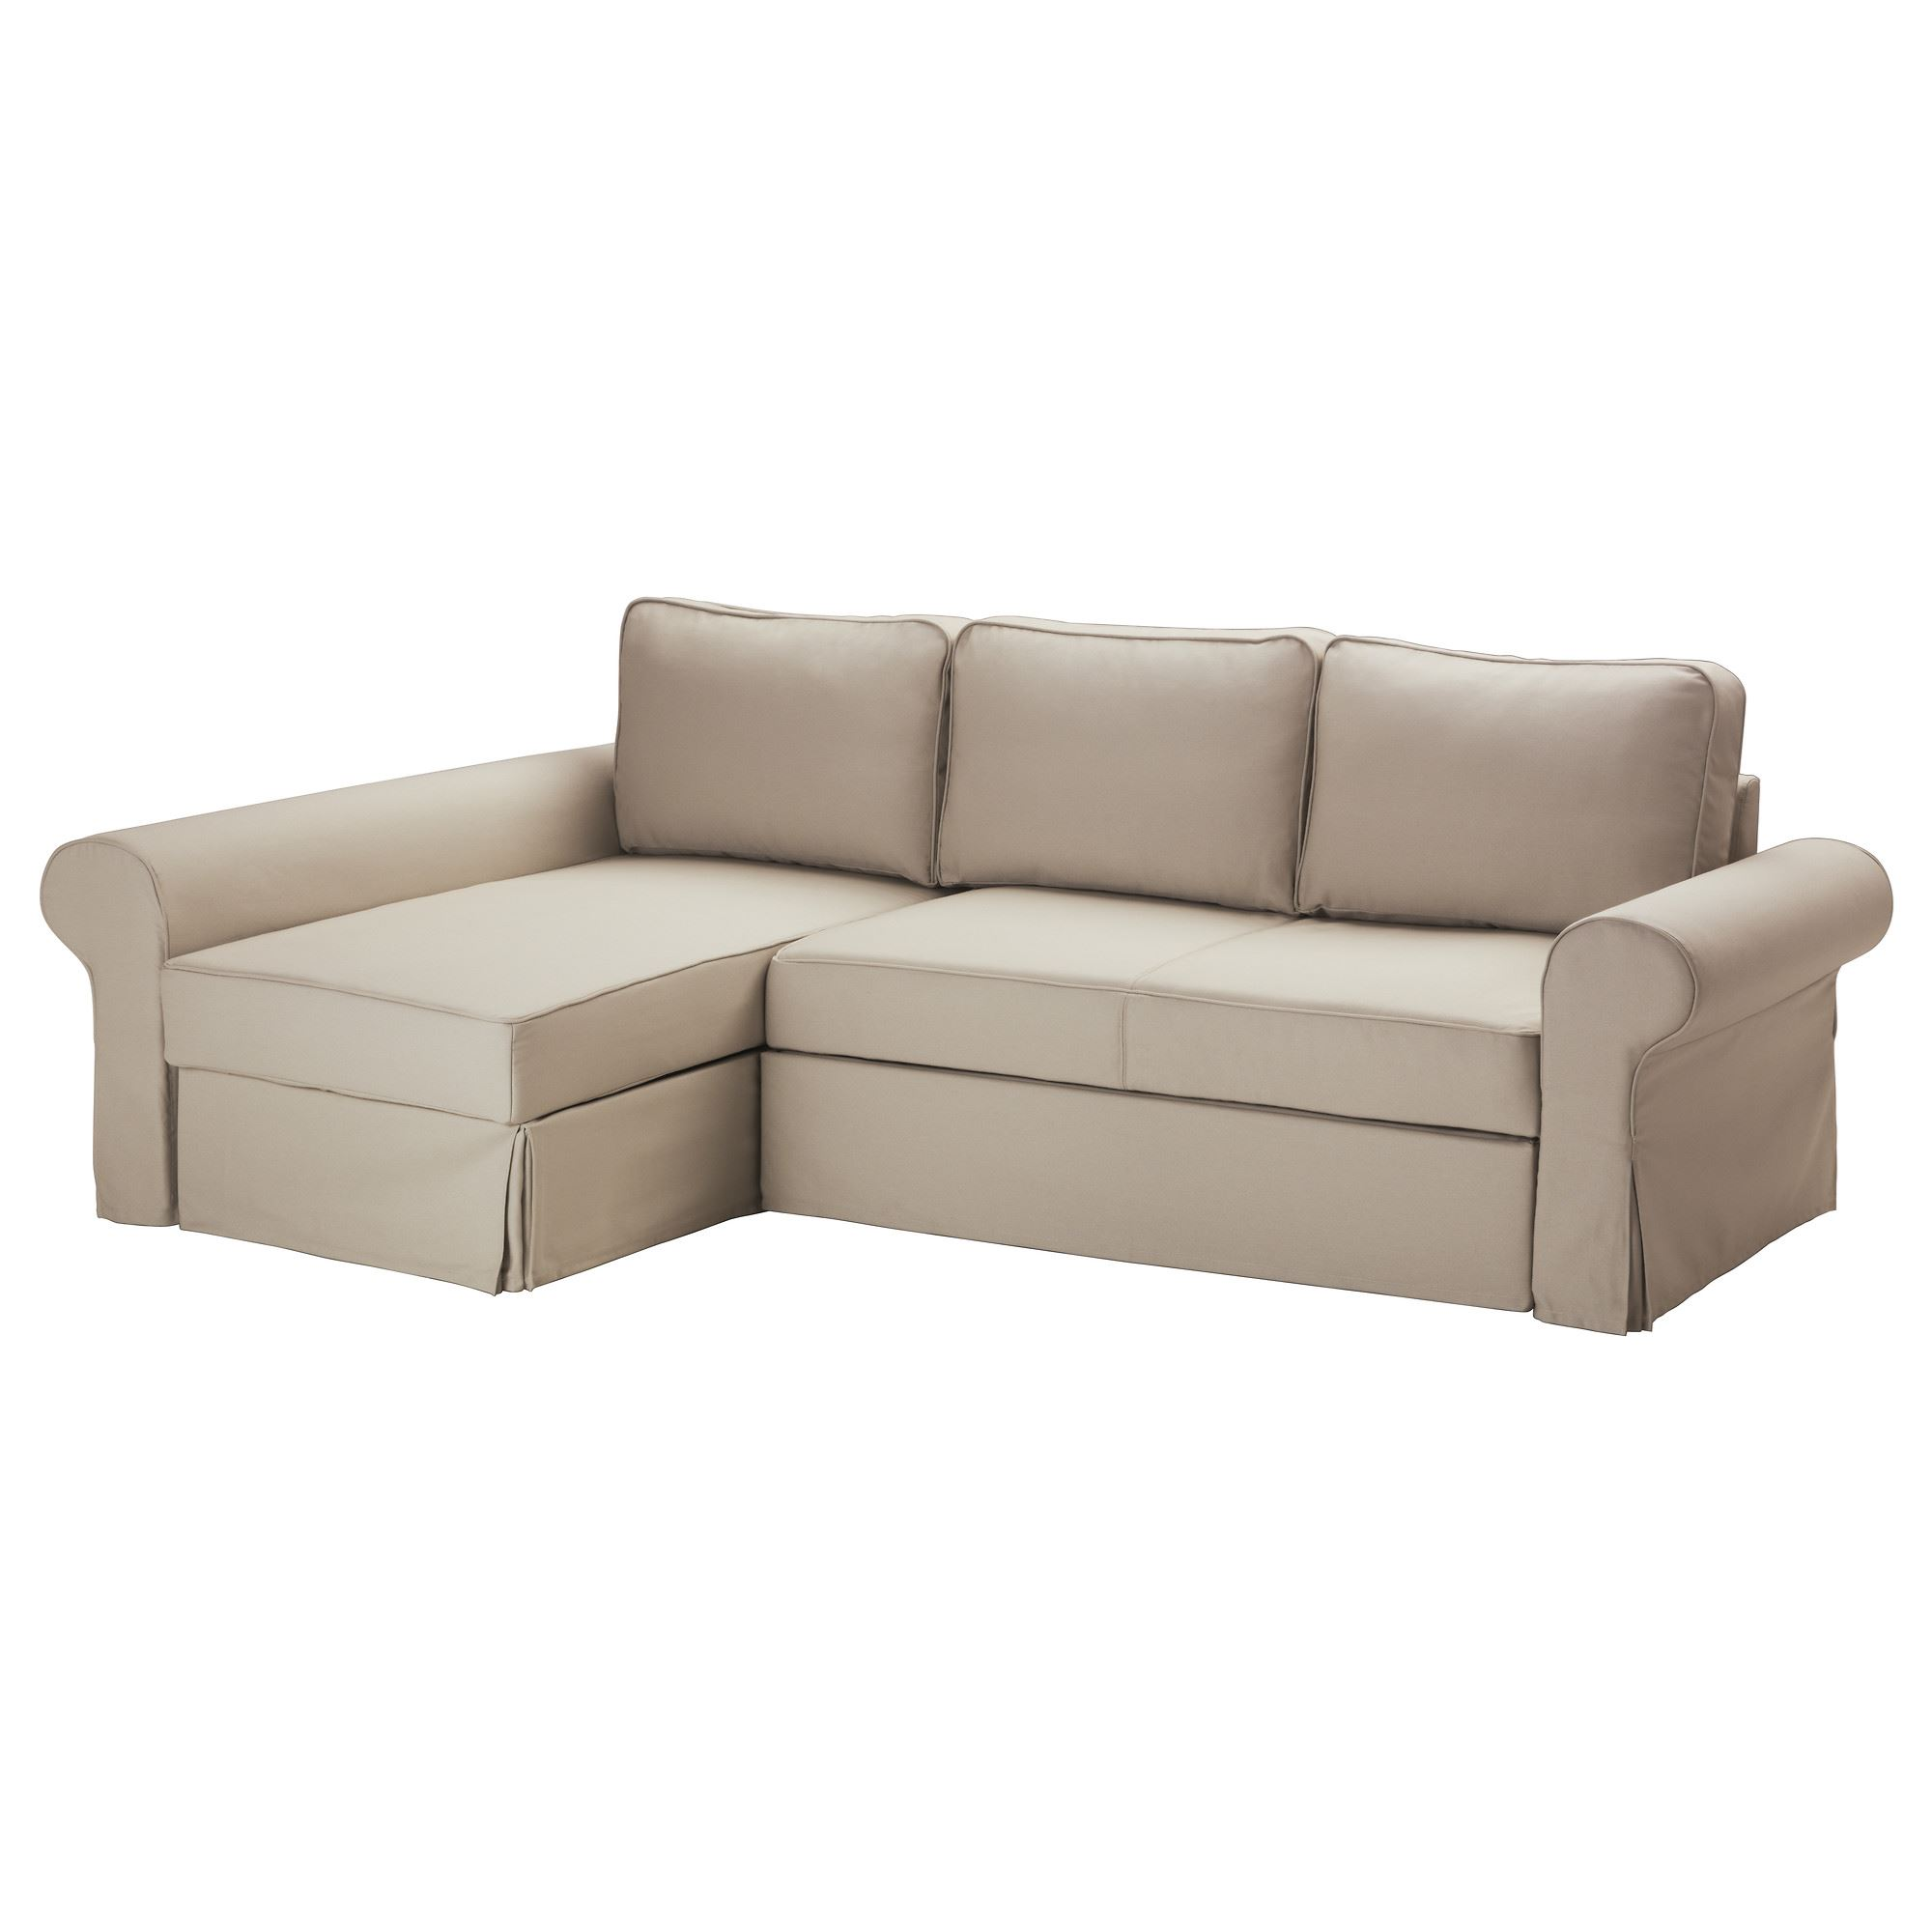 BACKABRO MARIEBY 2 seat sofa bed with chaise longue tygelsjo beige